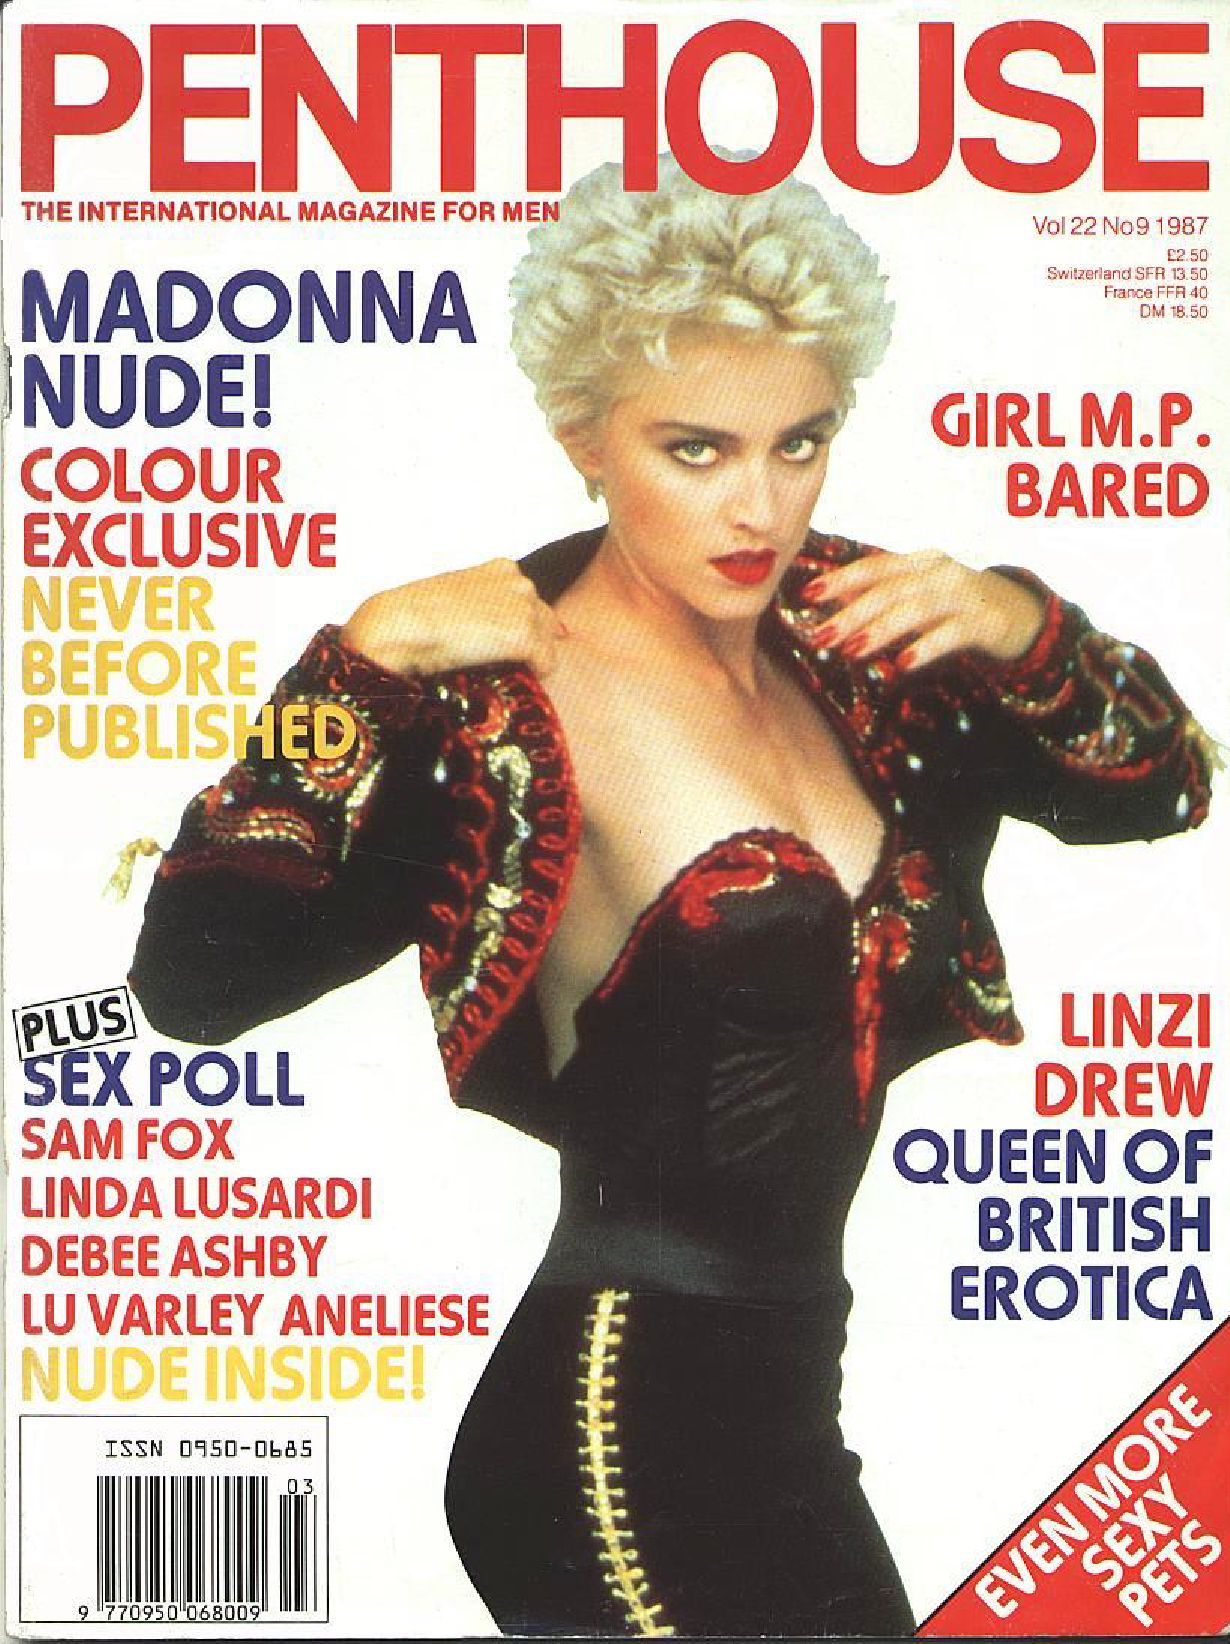 Madonna - Penthouse - Nude(1987.09 Vol 22) by MADONNAGLAM